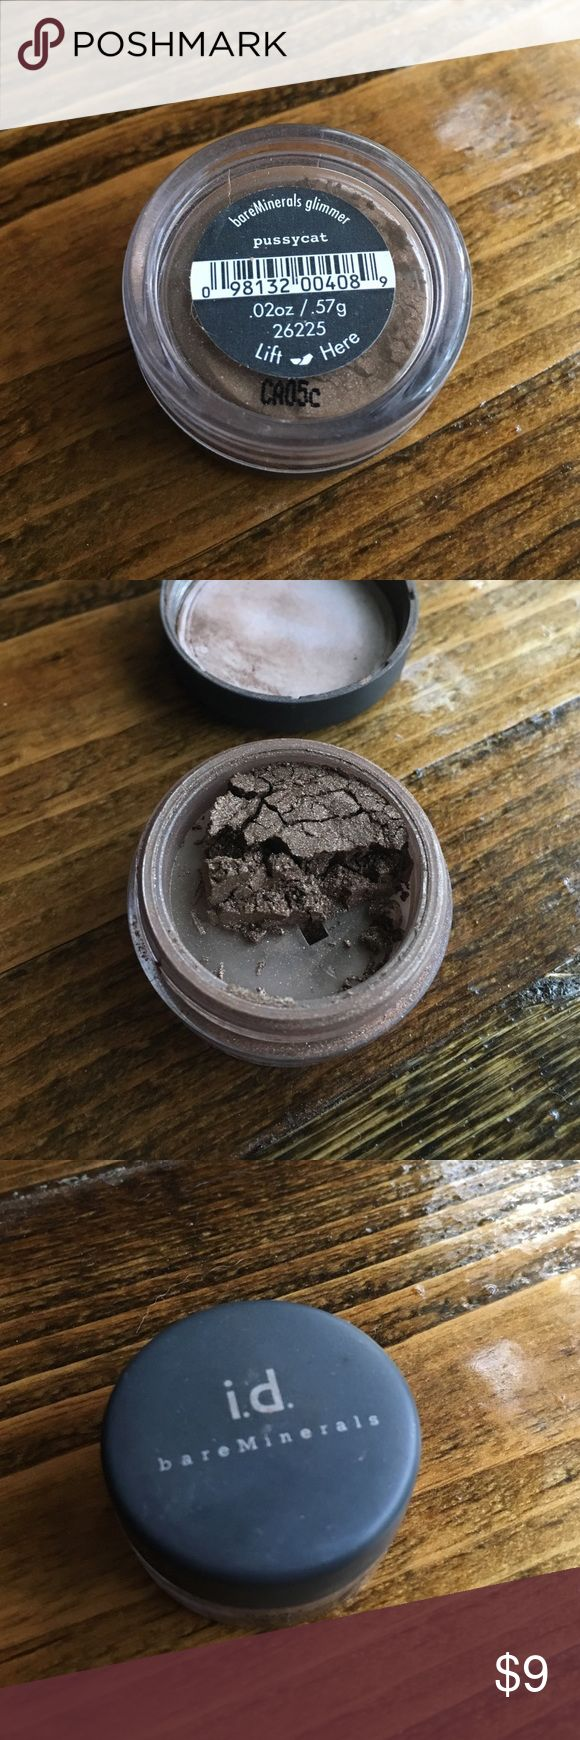 Bare Minerals Shimmer Eyeshadow For sale is a barely used brownish shimmery Eyeshadow from Bare Minerals. bareMinerals Makeup Eyeshadow